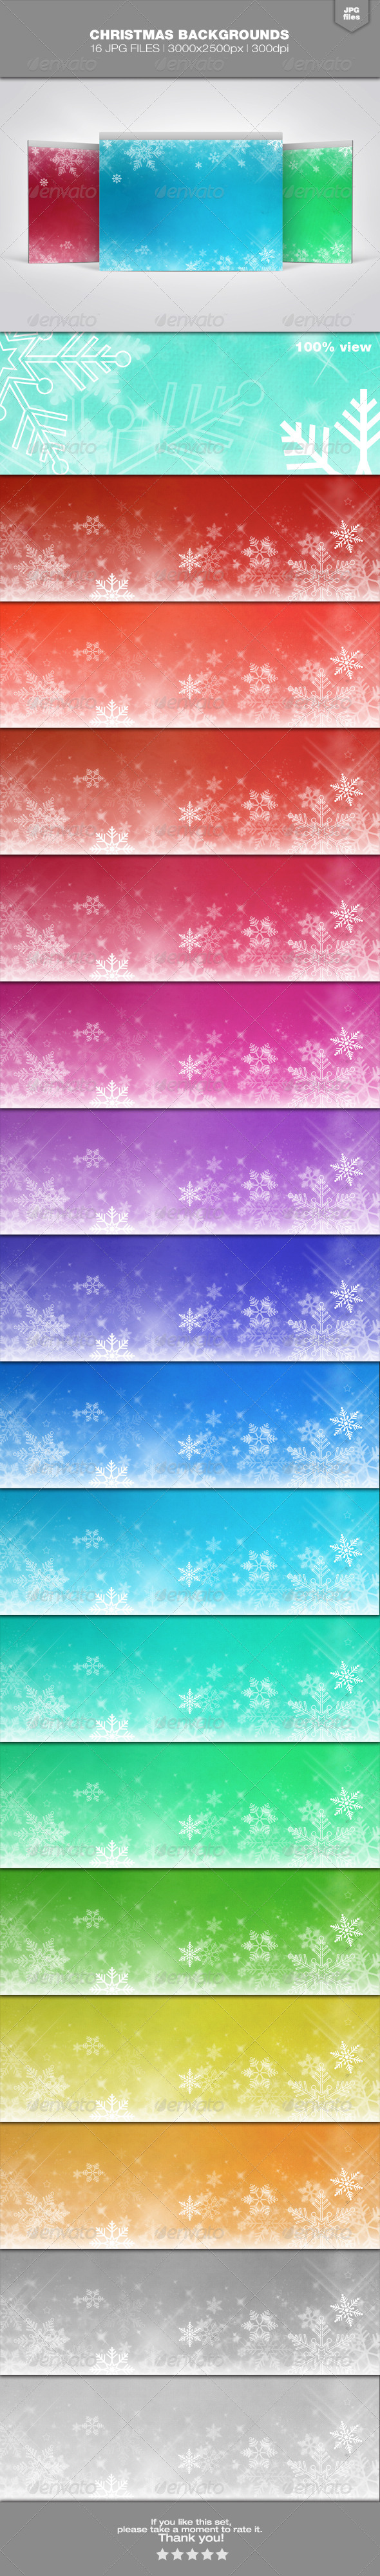 Christmas Backgrounds Set 2 - Backgrounds Graphics